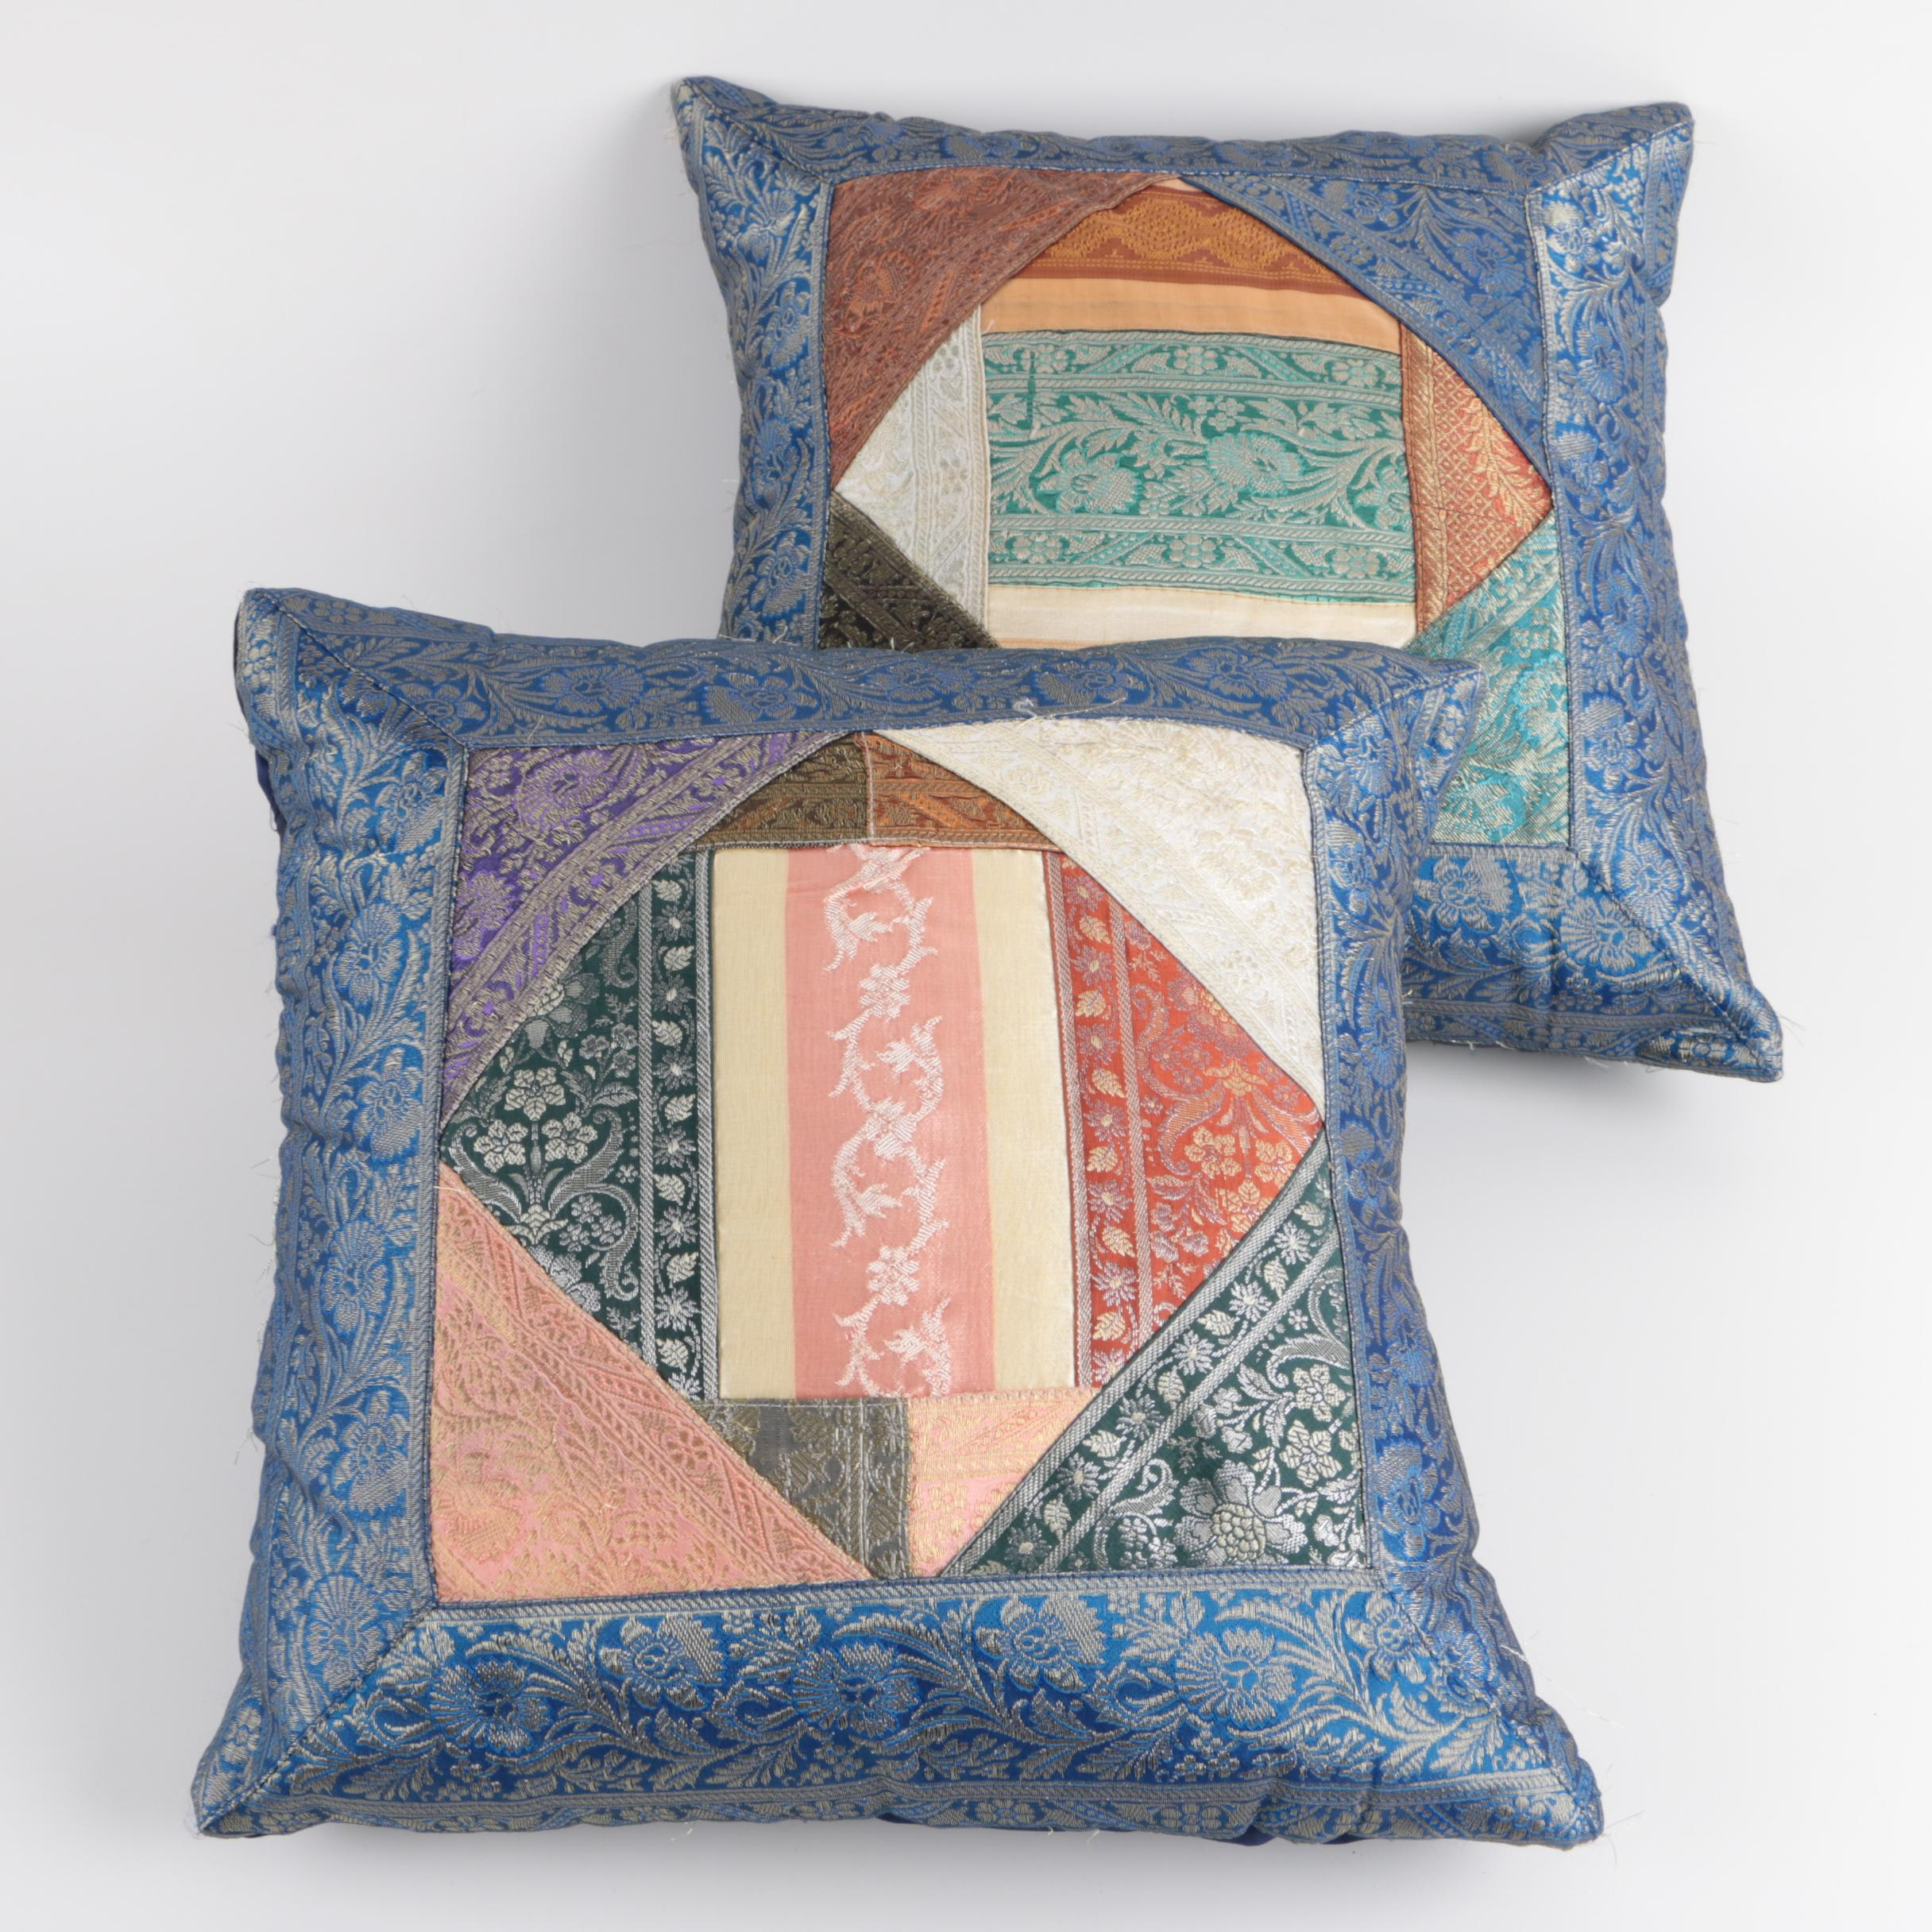 Decorative Foliage Throw Pillows